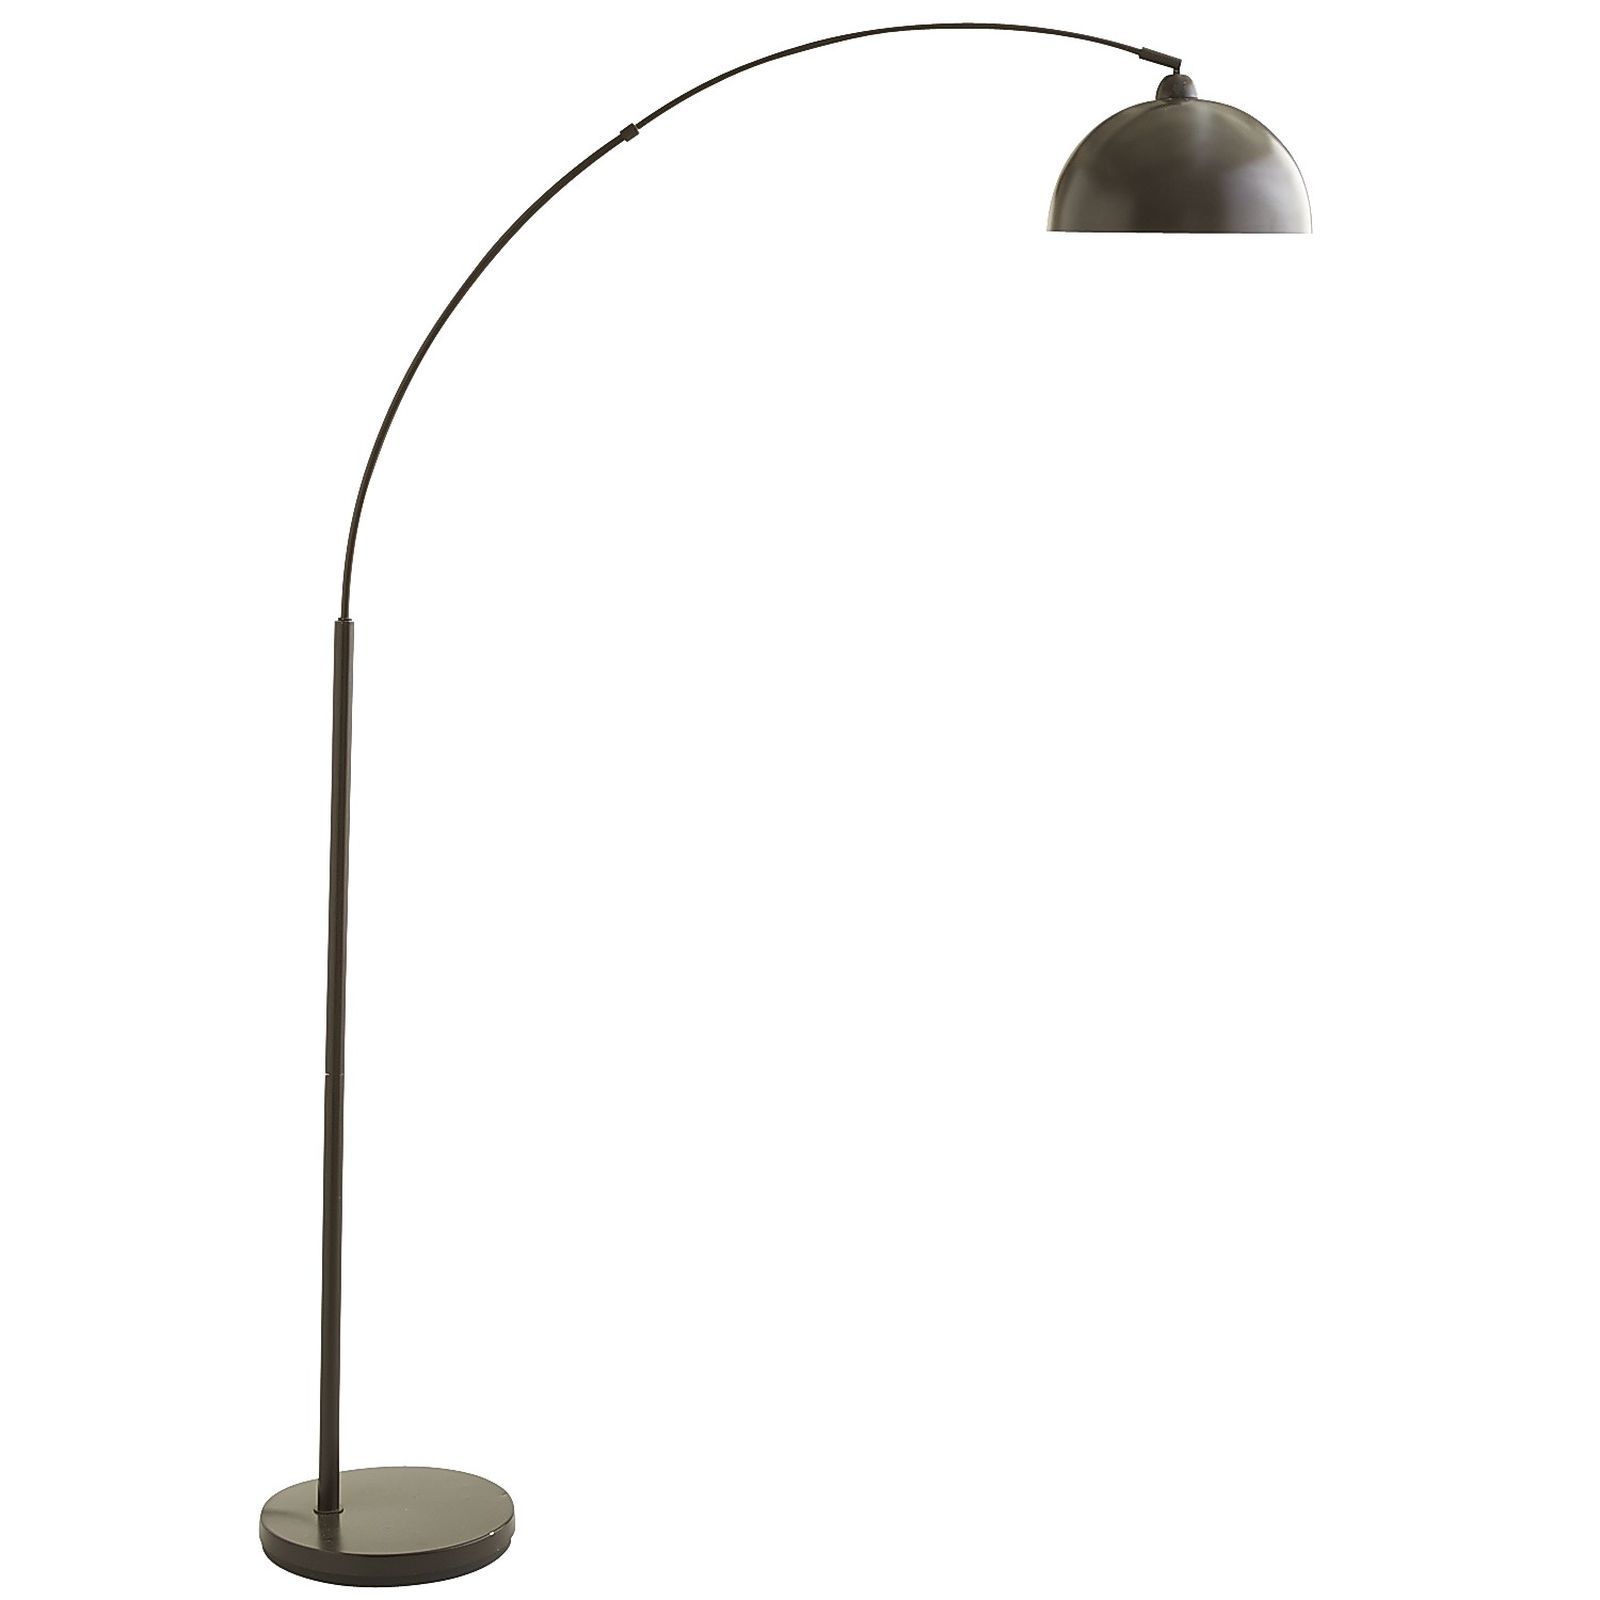 Picking the Perfect Arc Lamp For Your Home